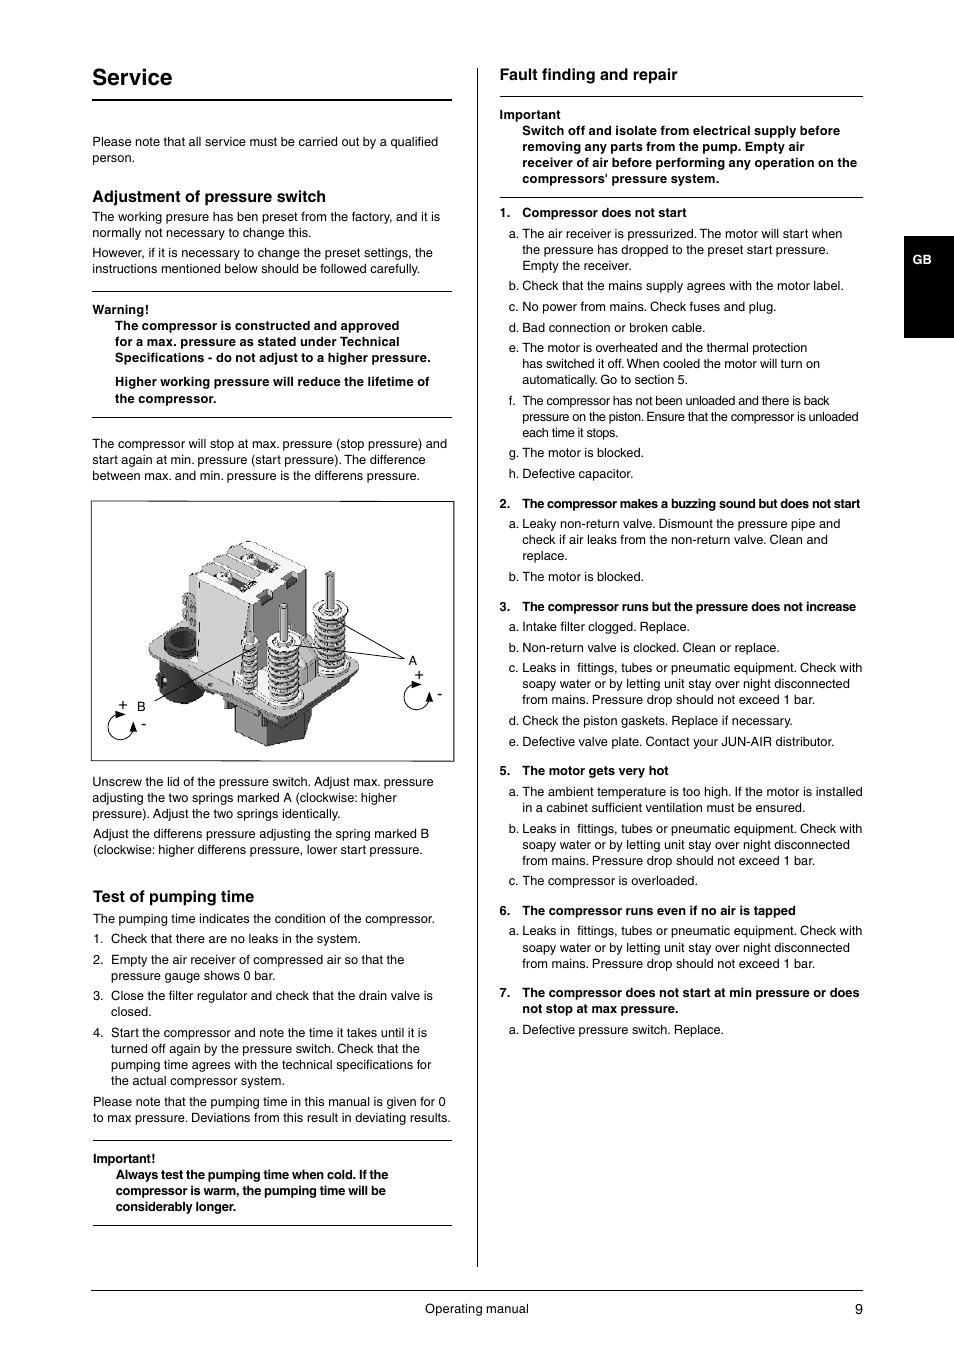 Service   JUN-AIR OF1202 series [cabinet] User Manual   Page 9 /